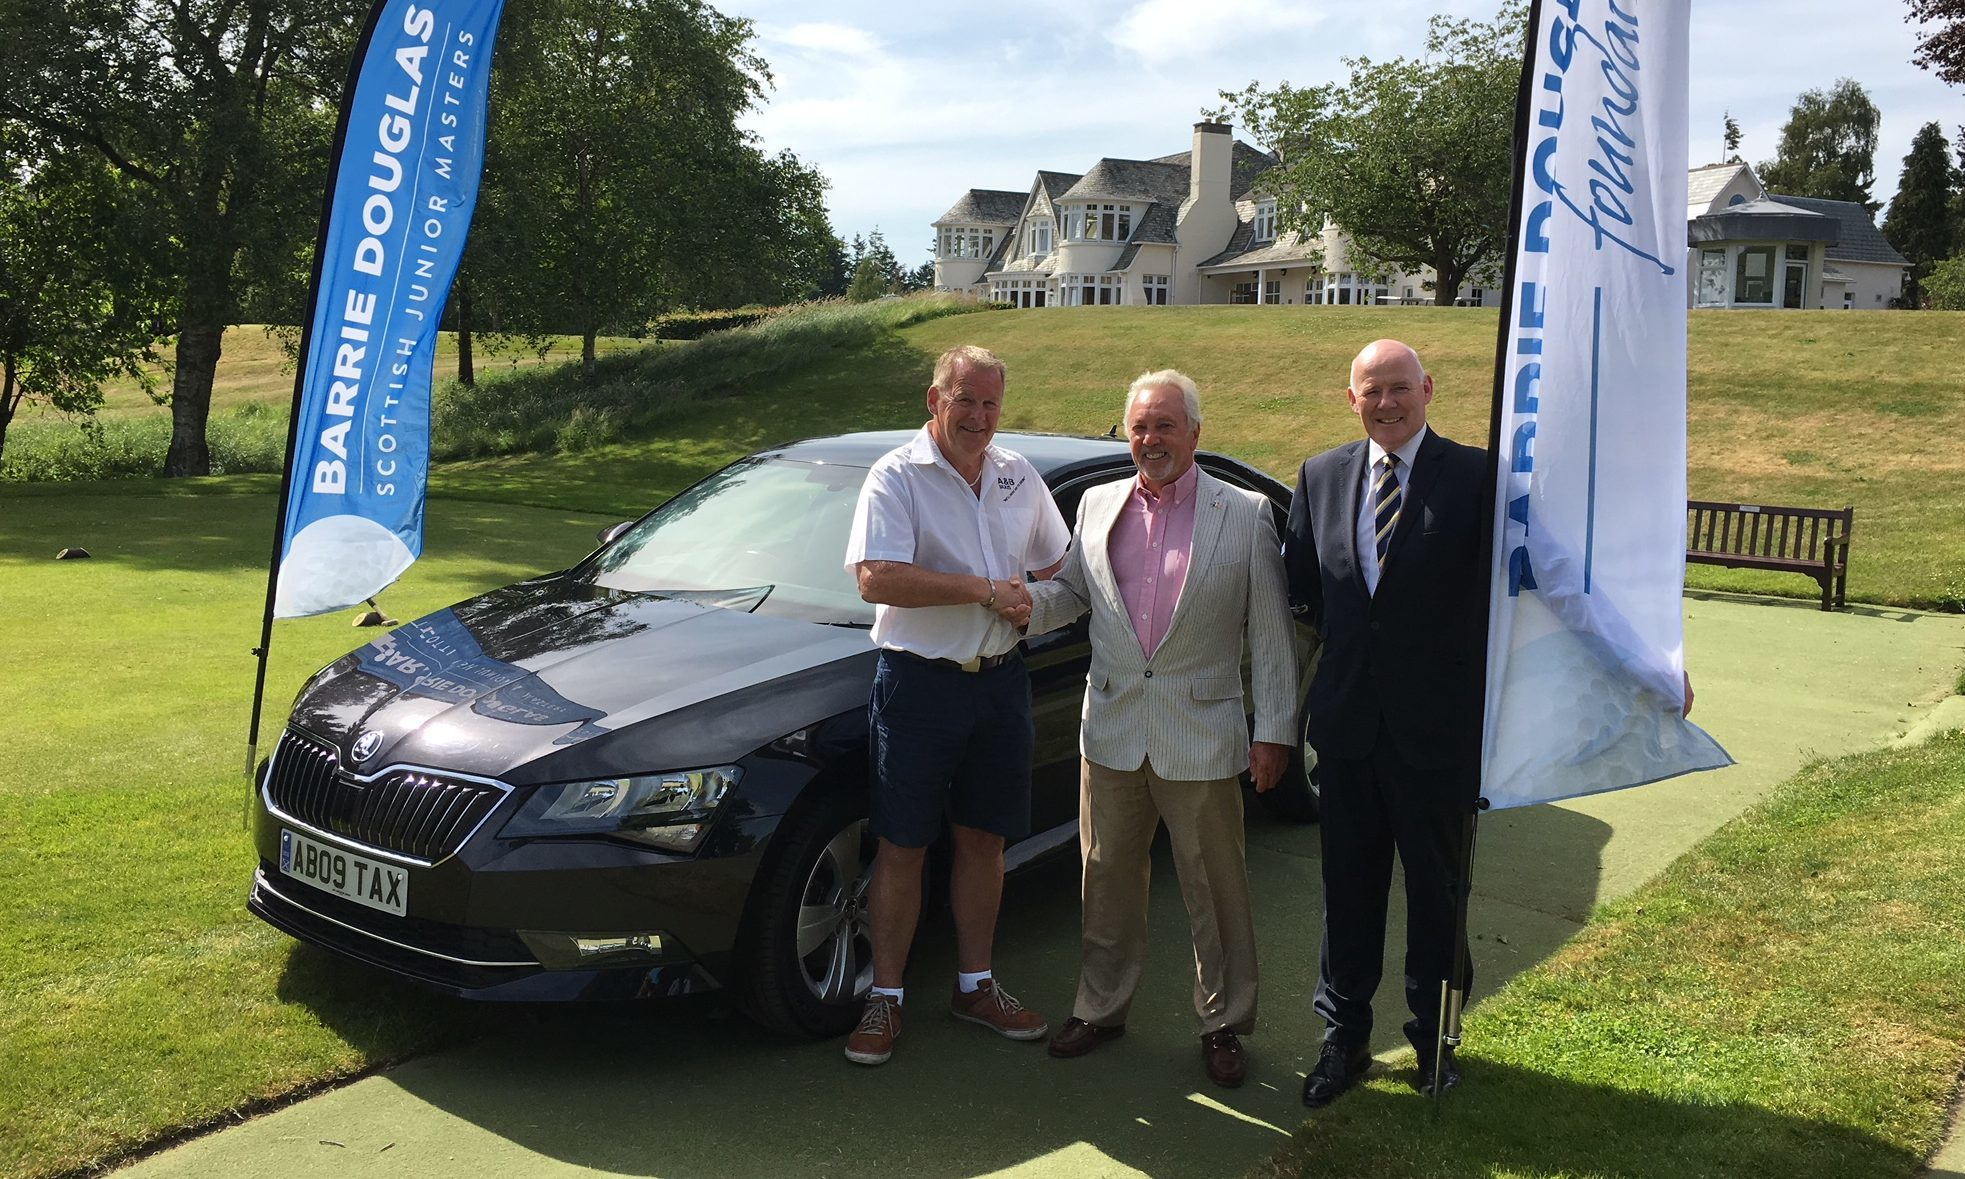 """Jimmy Turriff (left), director with team sponsors A&B Taxis, joins Blairgowrie club captain Brian Wesencraft (centre) and Charlie Gallagher of The Barrie Douglas Foundation for the launch of the """"Blairgowrie US Junior Invitational."""""""